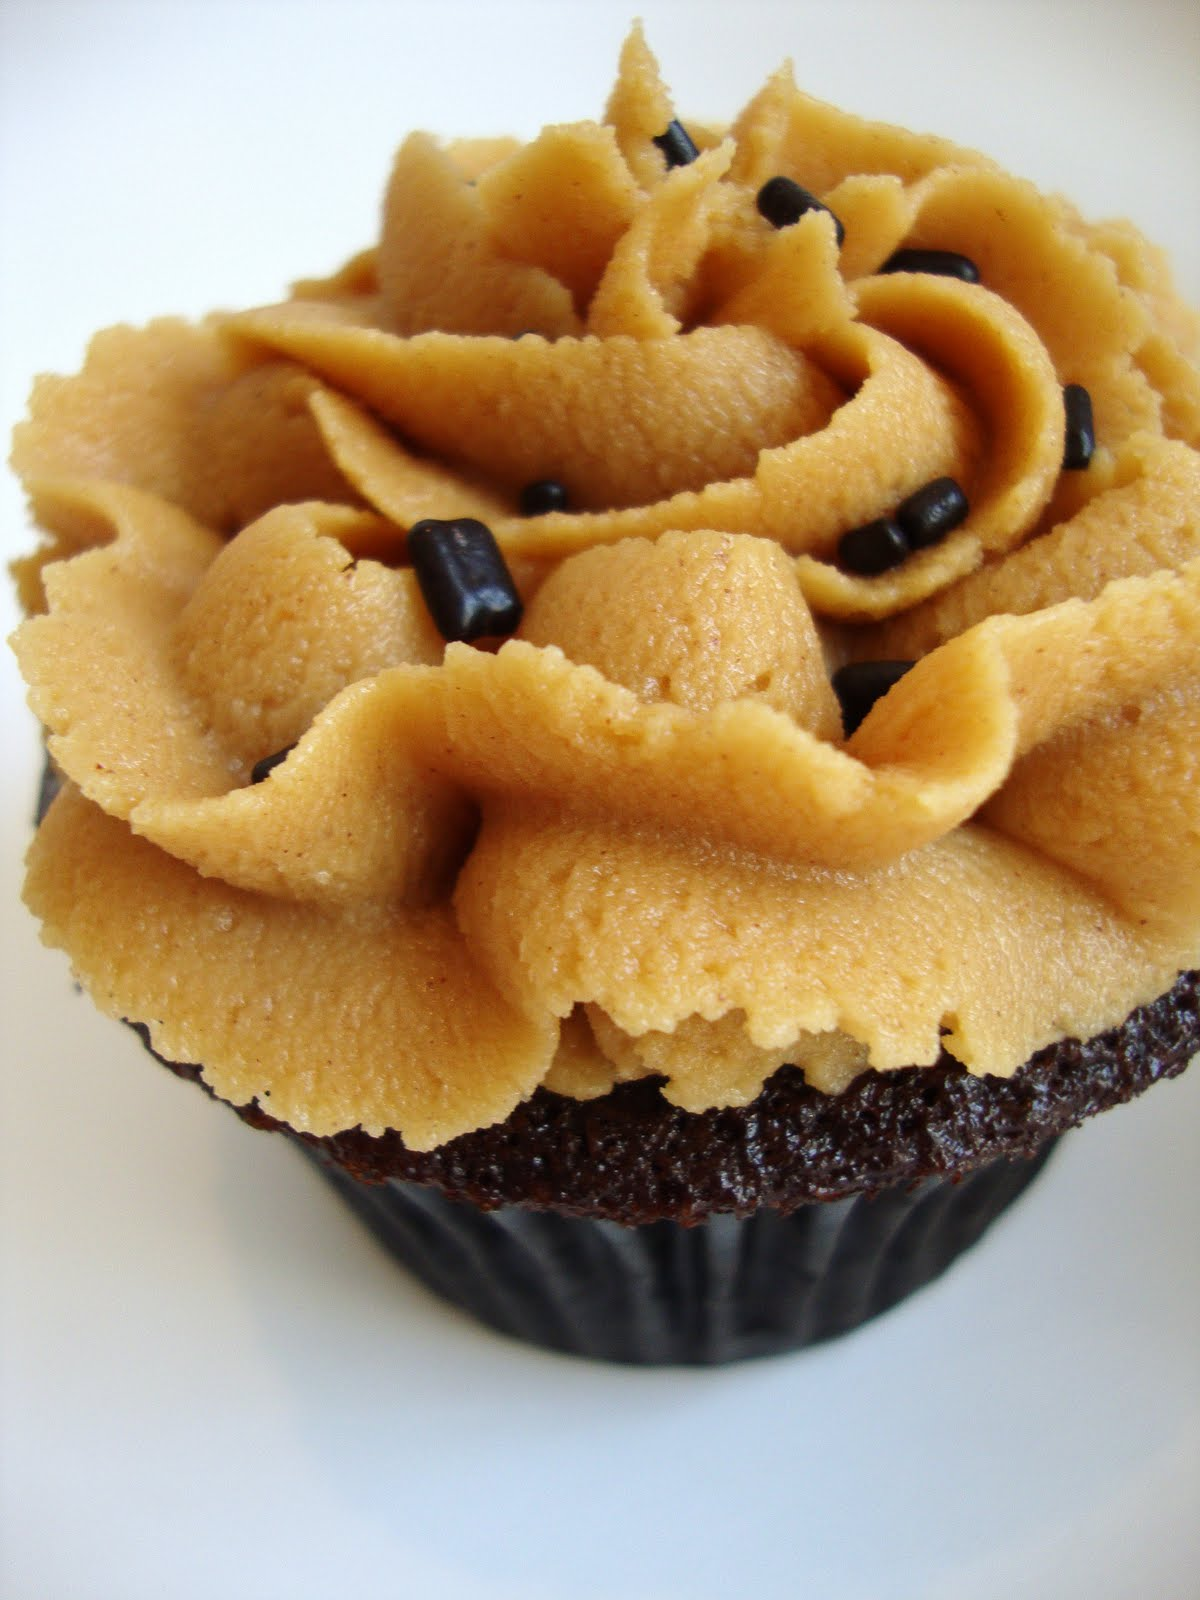 Dark Chocolate Cupcakes with Peanut Butter Frosting | Brown Eyed Baker